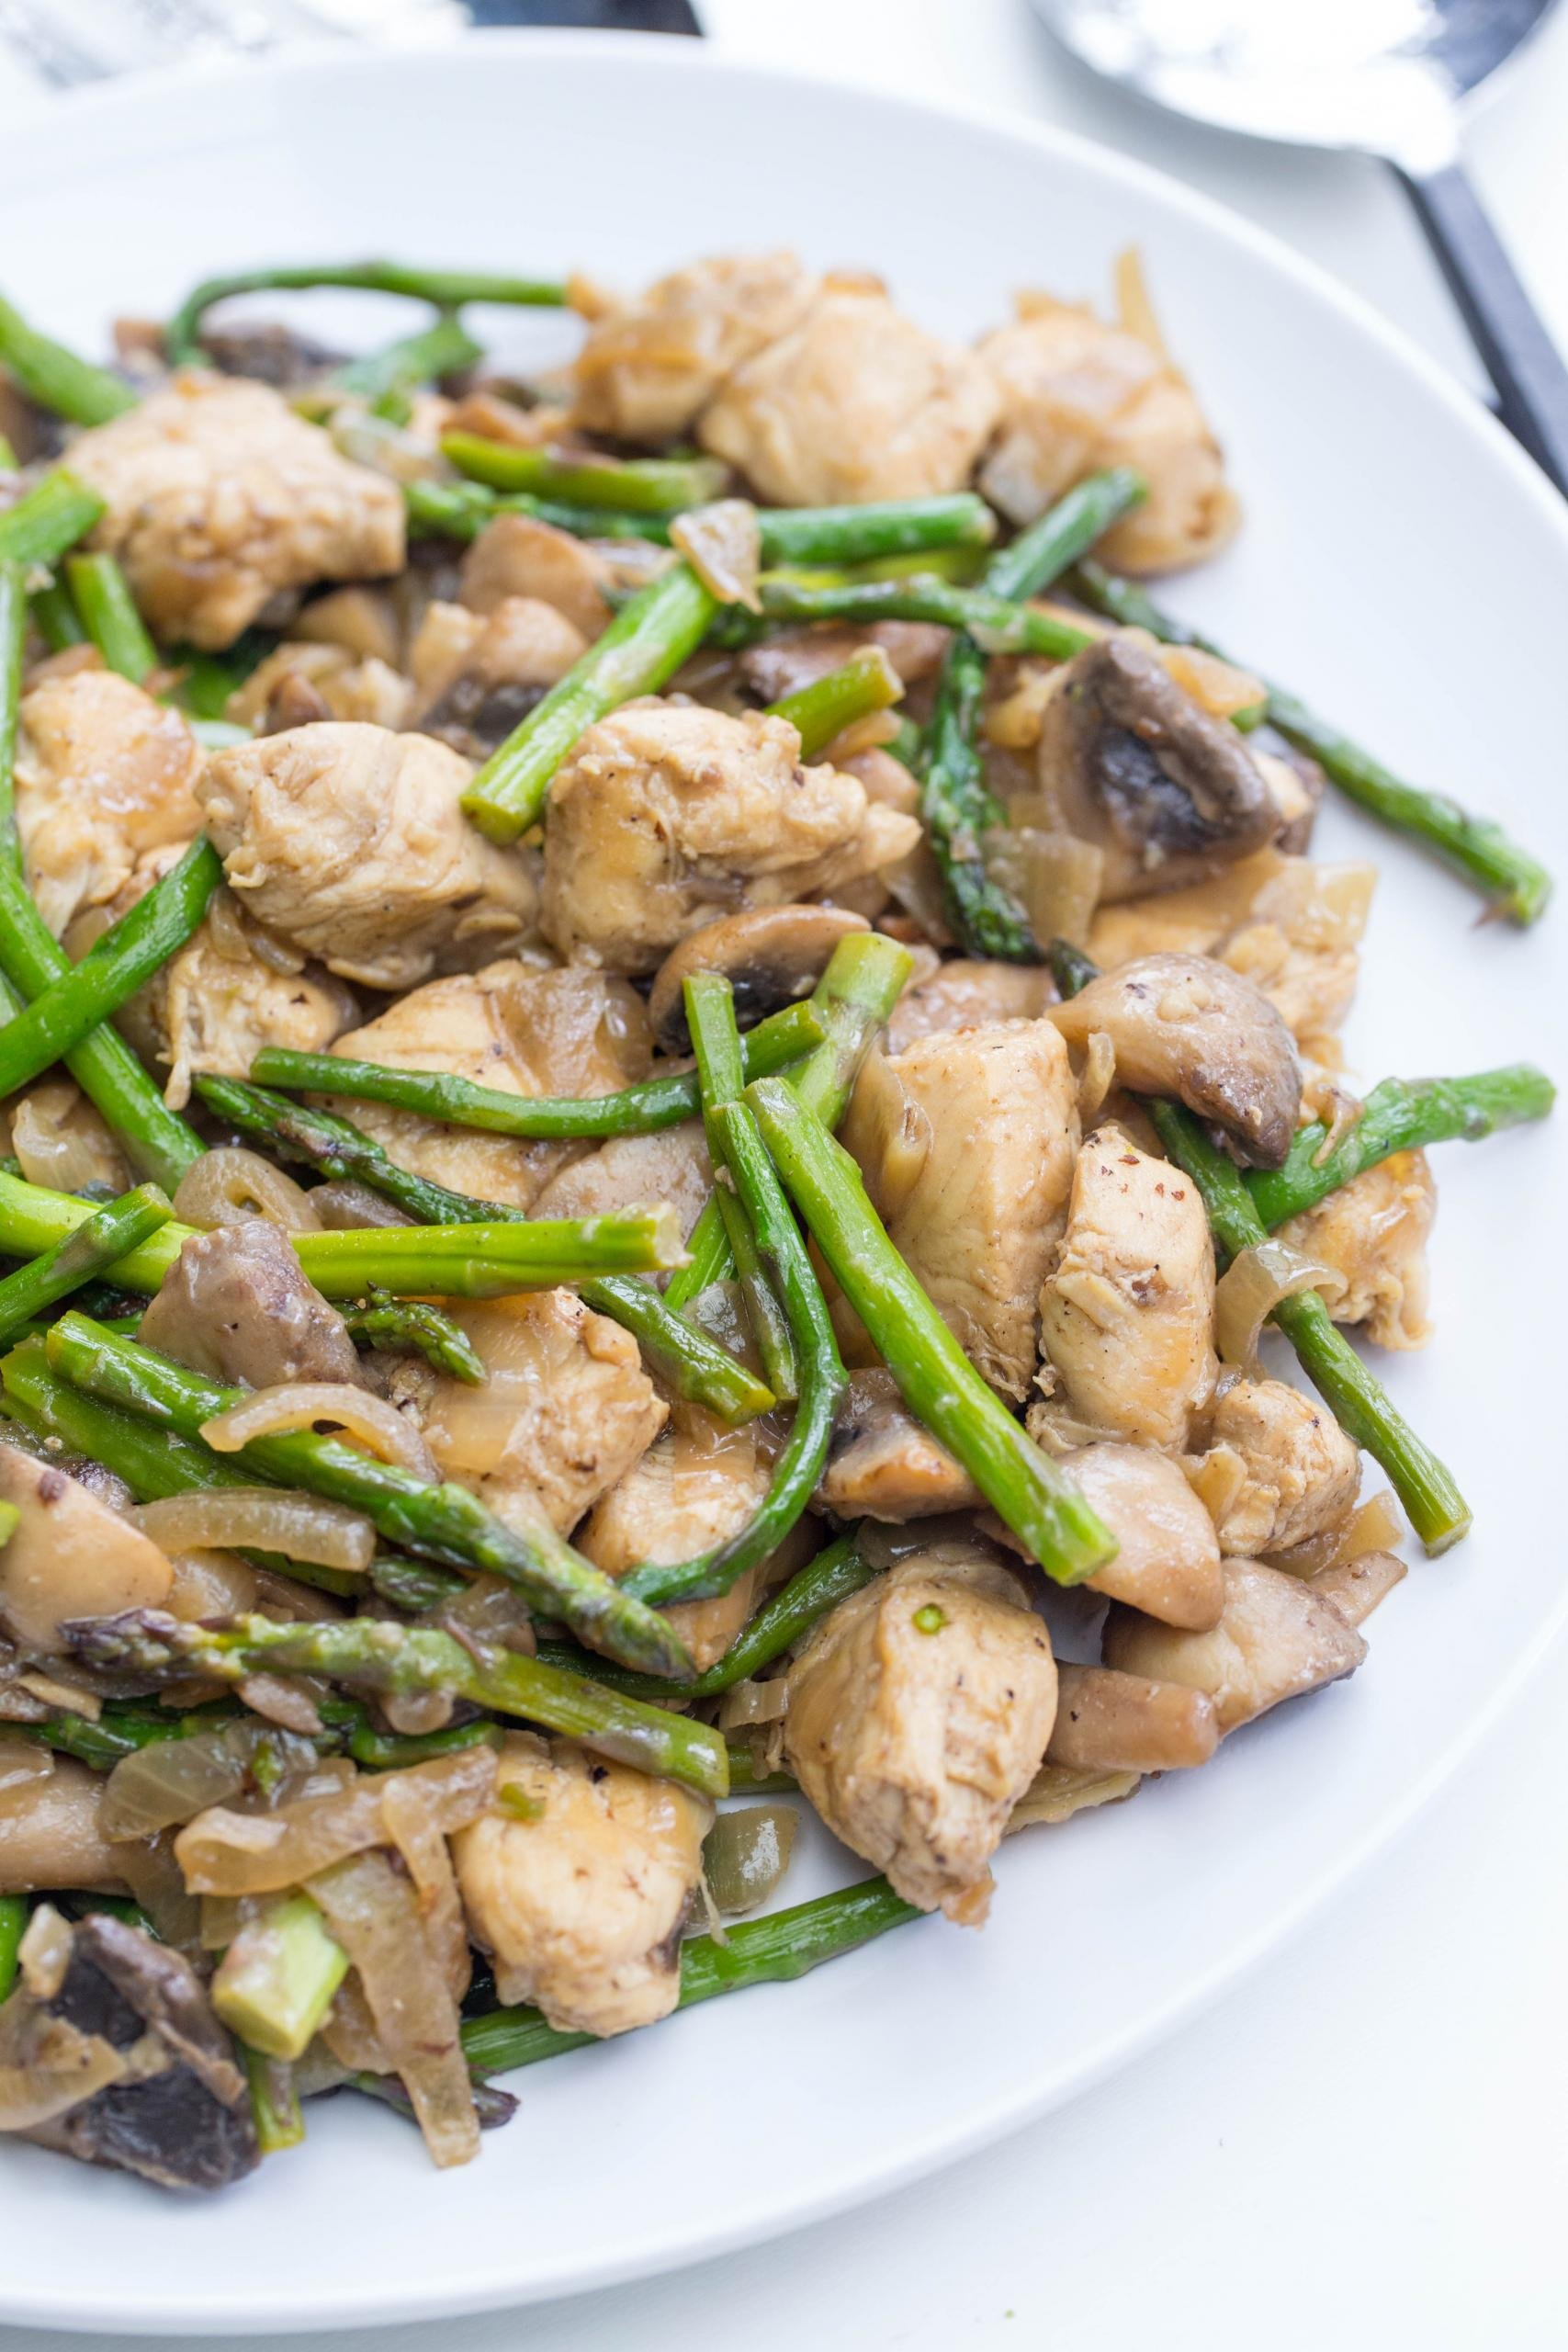 Chicken and Mushrooms with Asparagus on a plate